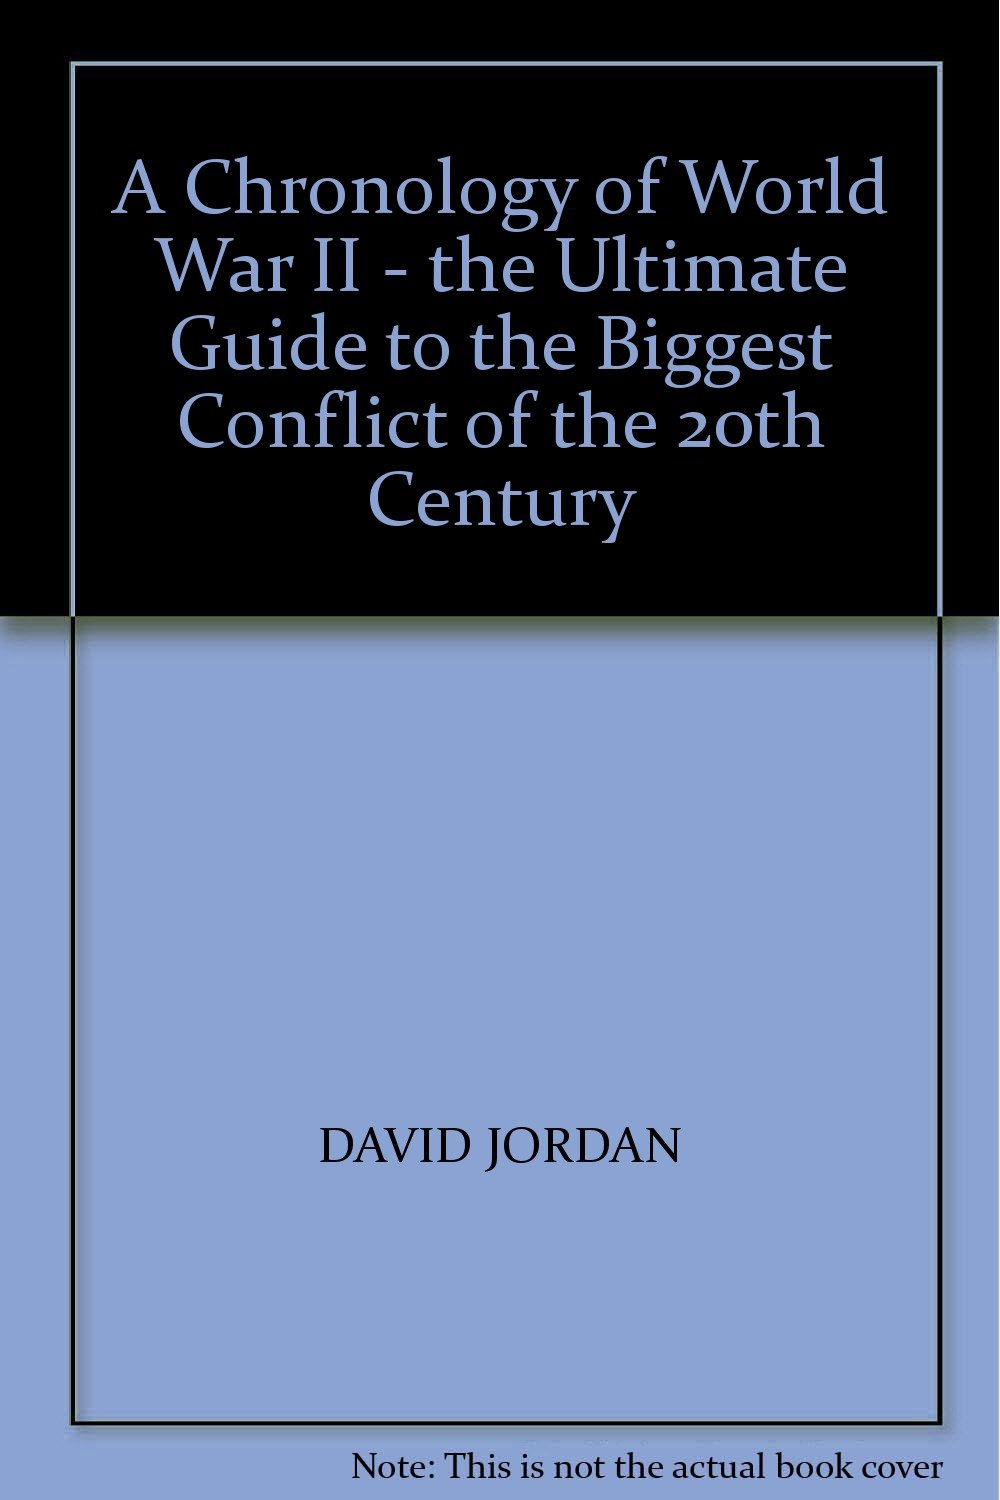 Download A Chronology of World War II - the Ultimate Guide to the Biggest Conflict of the 20th Century pdf epub